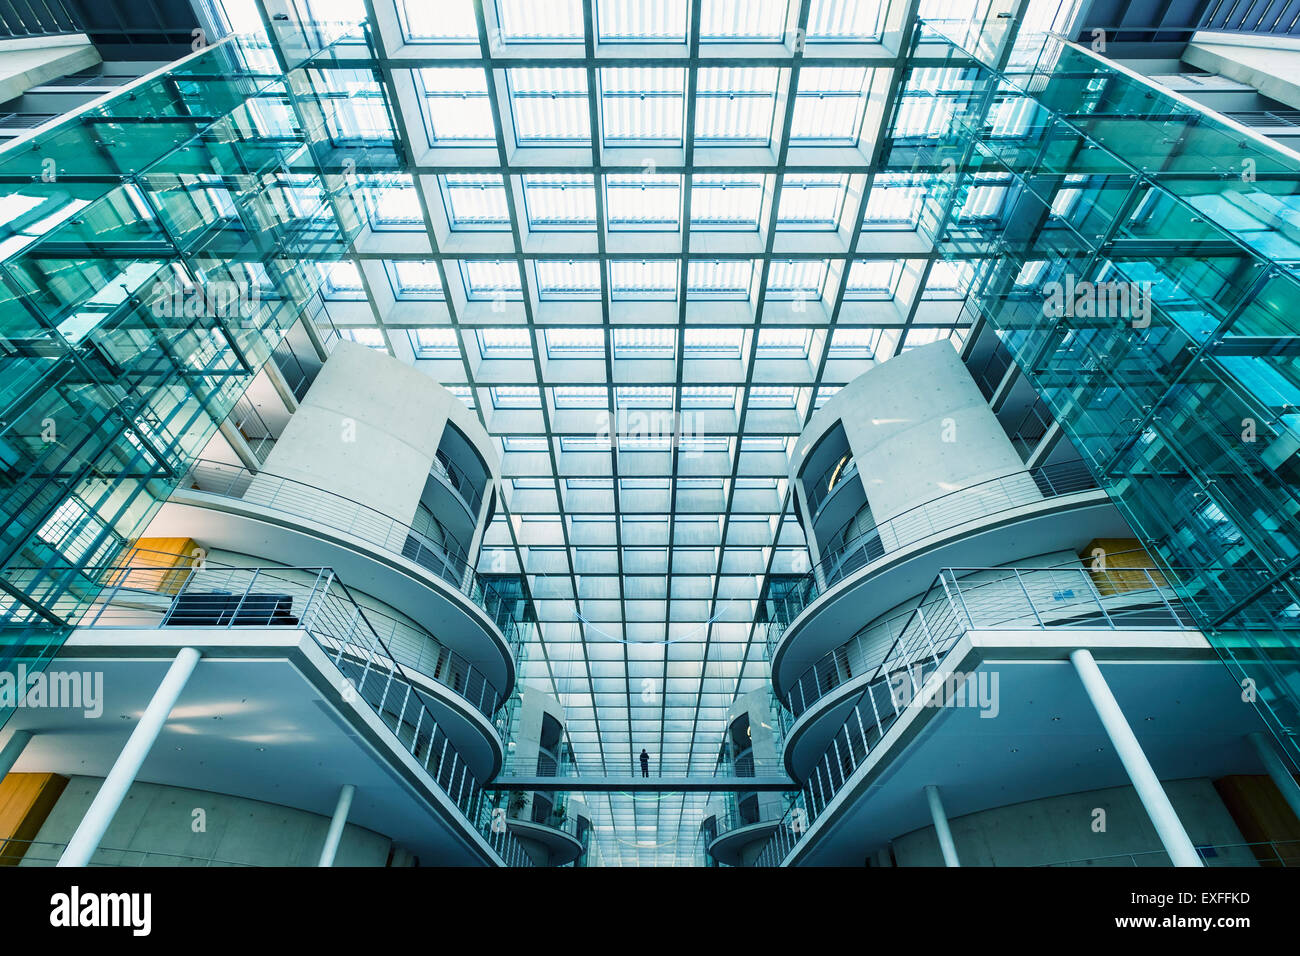 Interior of Paul Lobe Haus government building in Mitte Berlin Germany - Stock Image